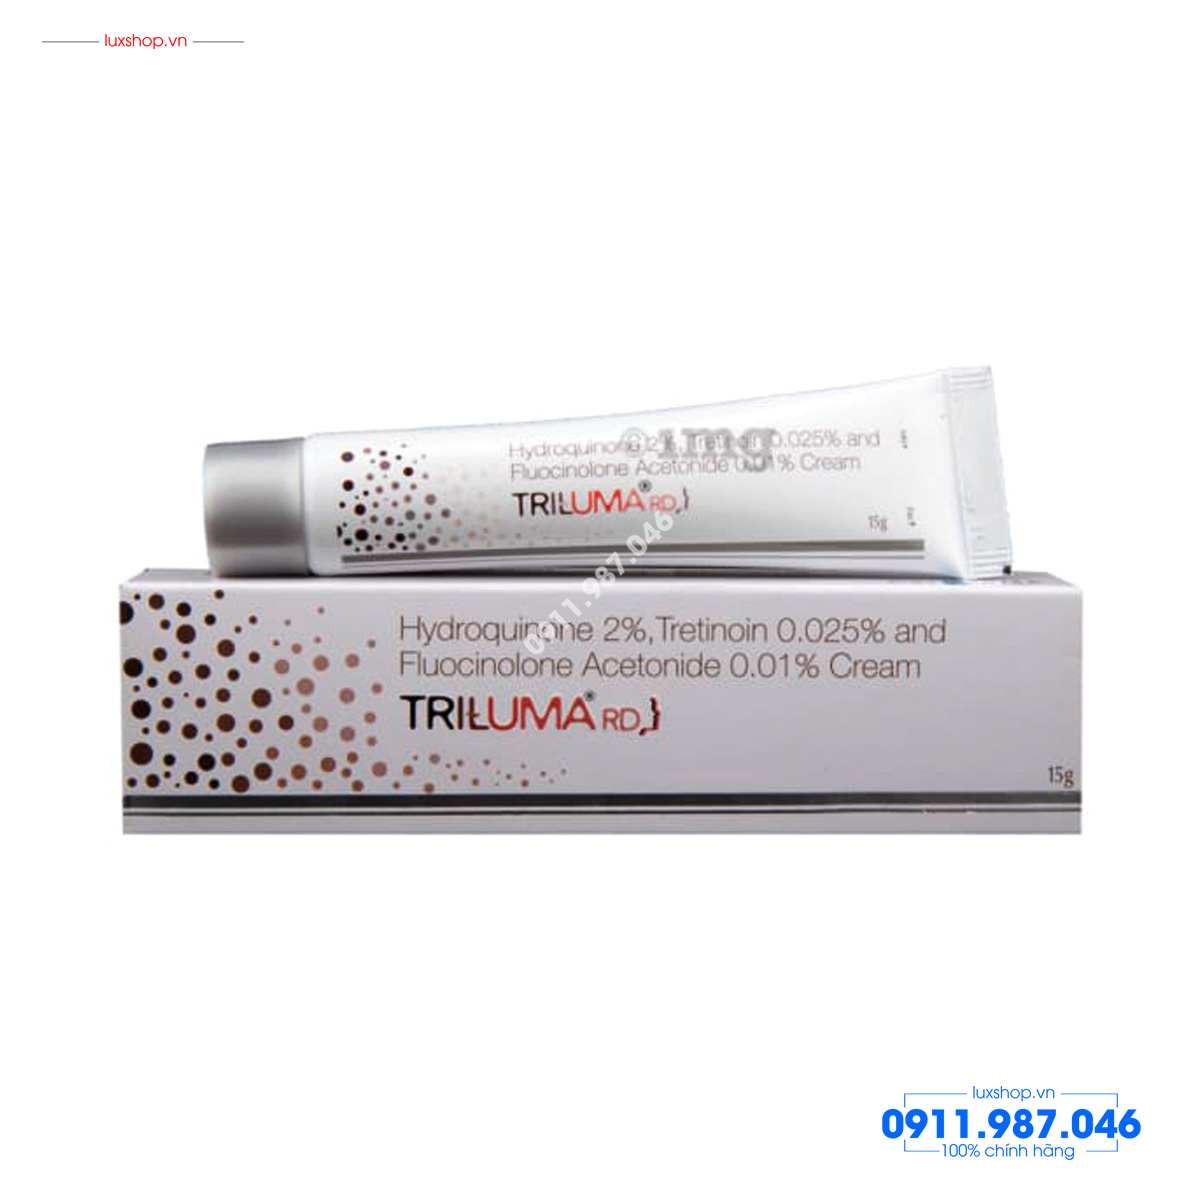 thuoc-tri-nam-triluma-galderma-3-thanh-phan-fluocinolone-acetonide-001-hydroquinone-4-tretinoin-005-an-do